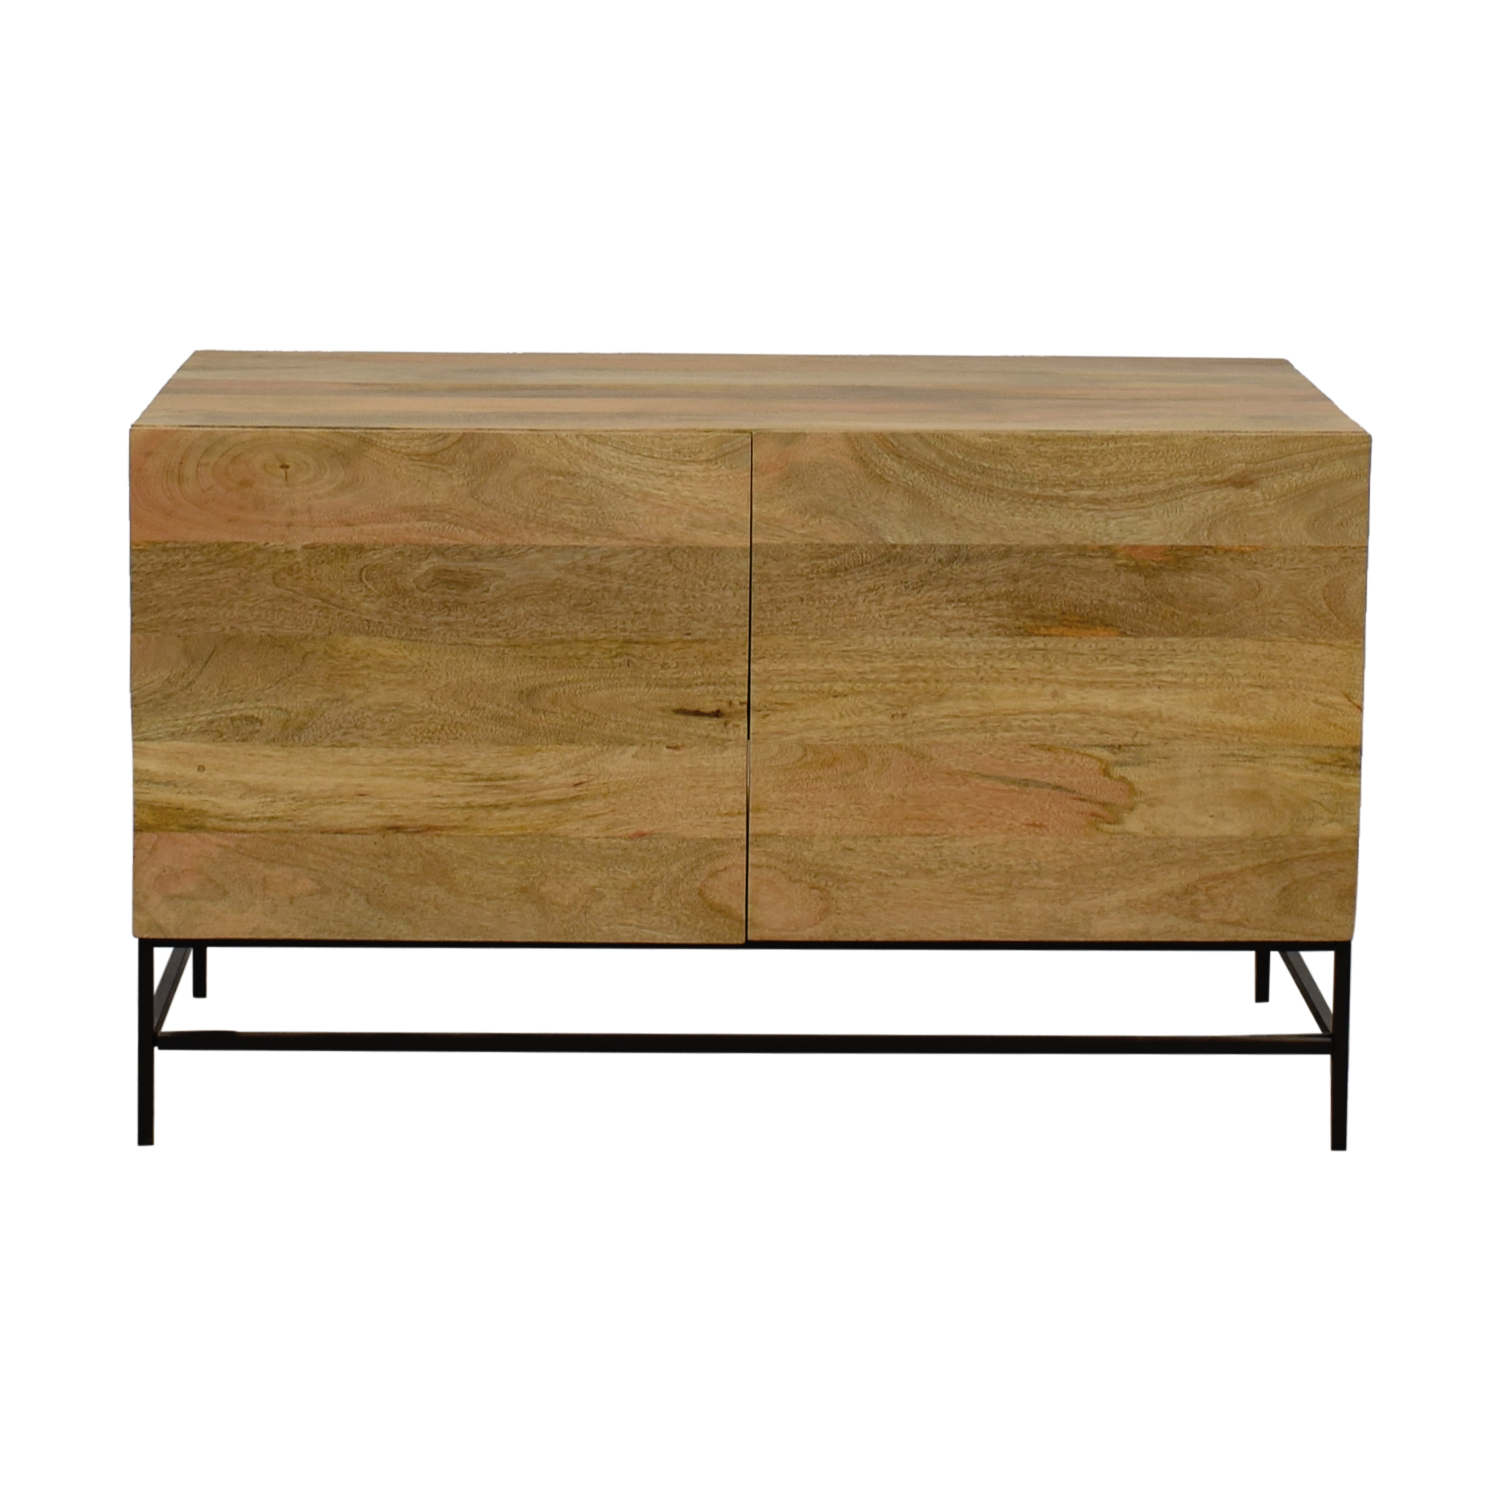 William Sonoma William Sonoma Natural Raw Mango Wood Media Console price